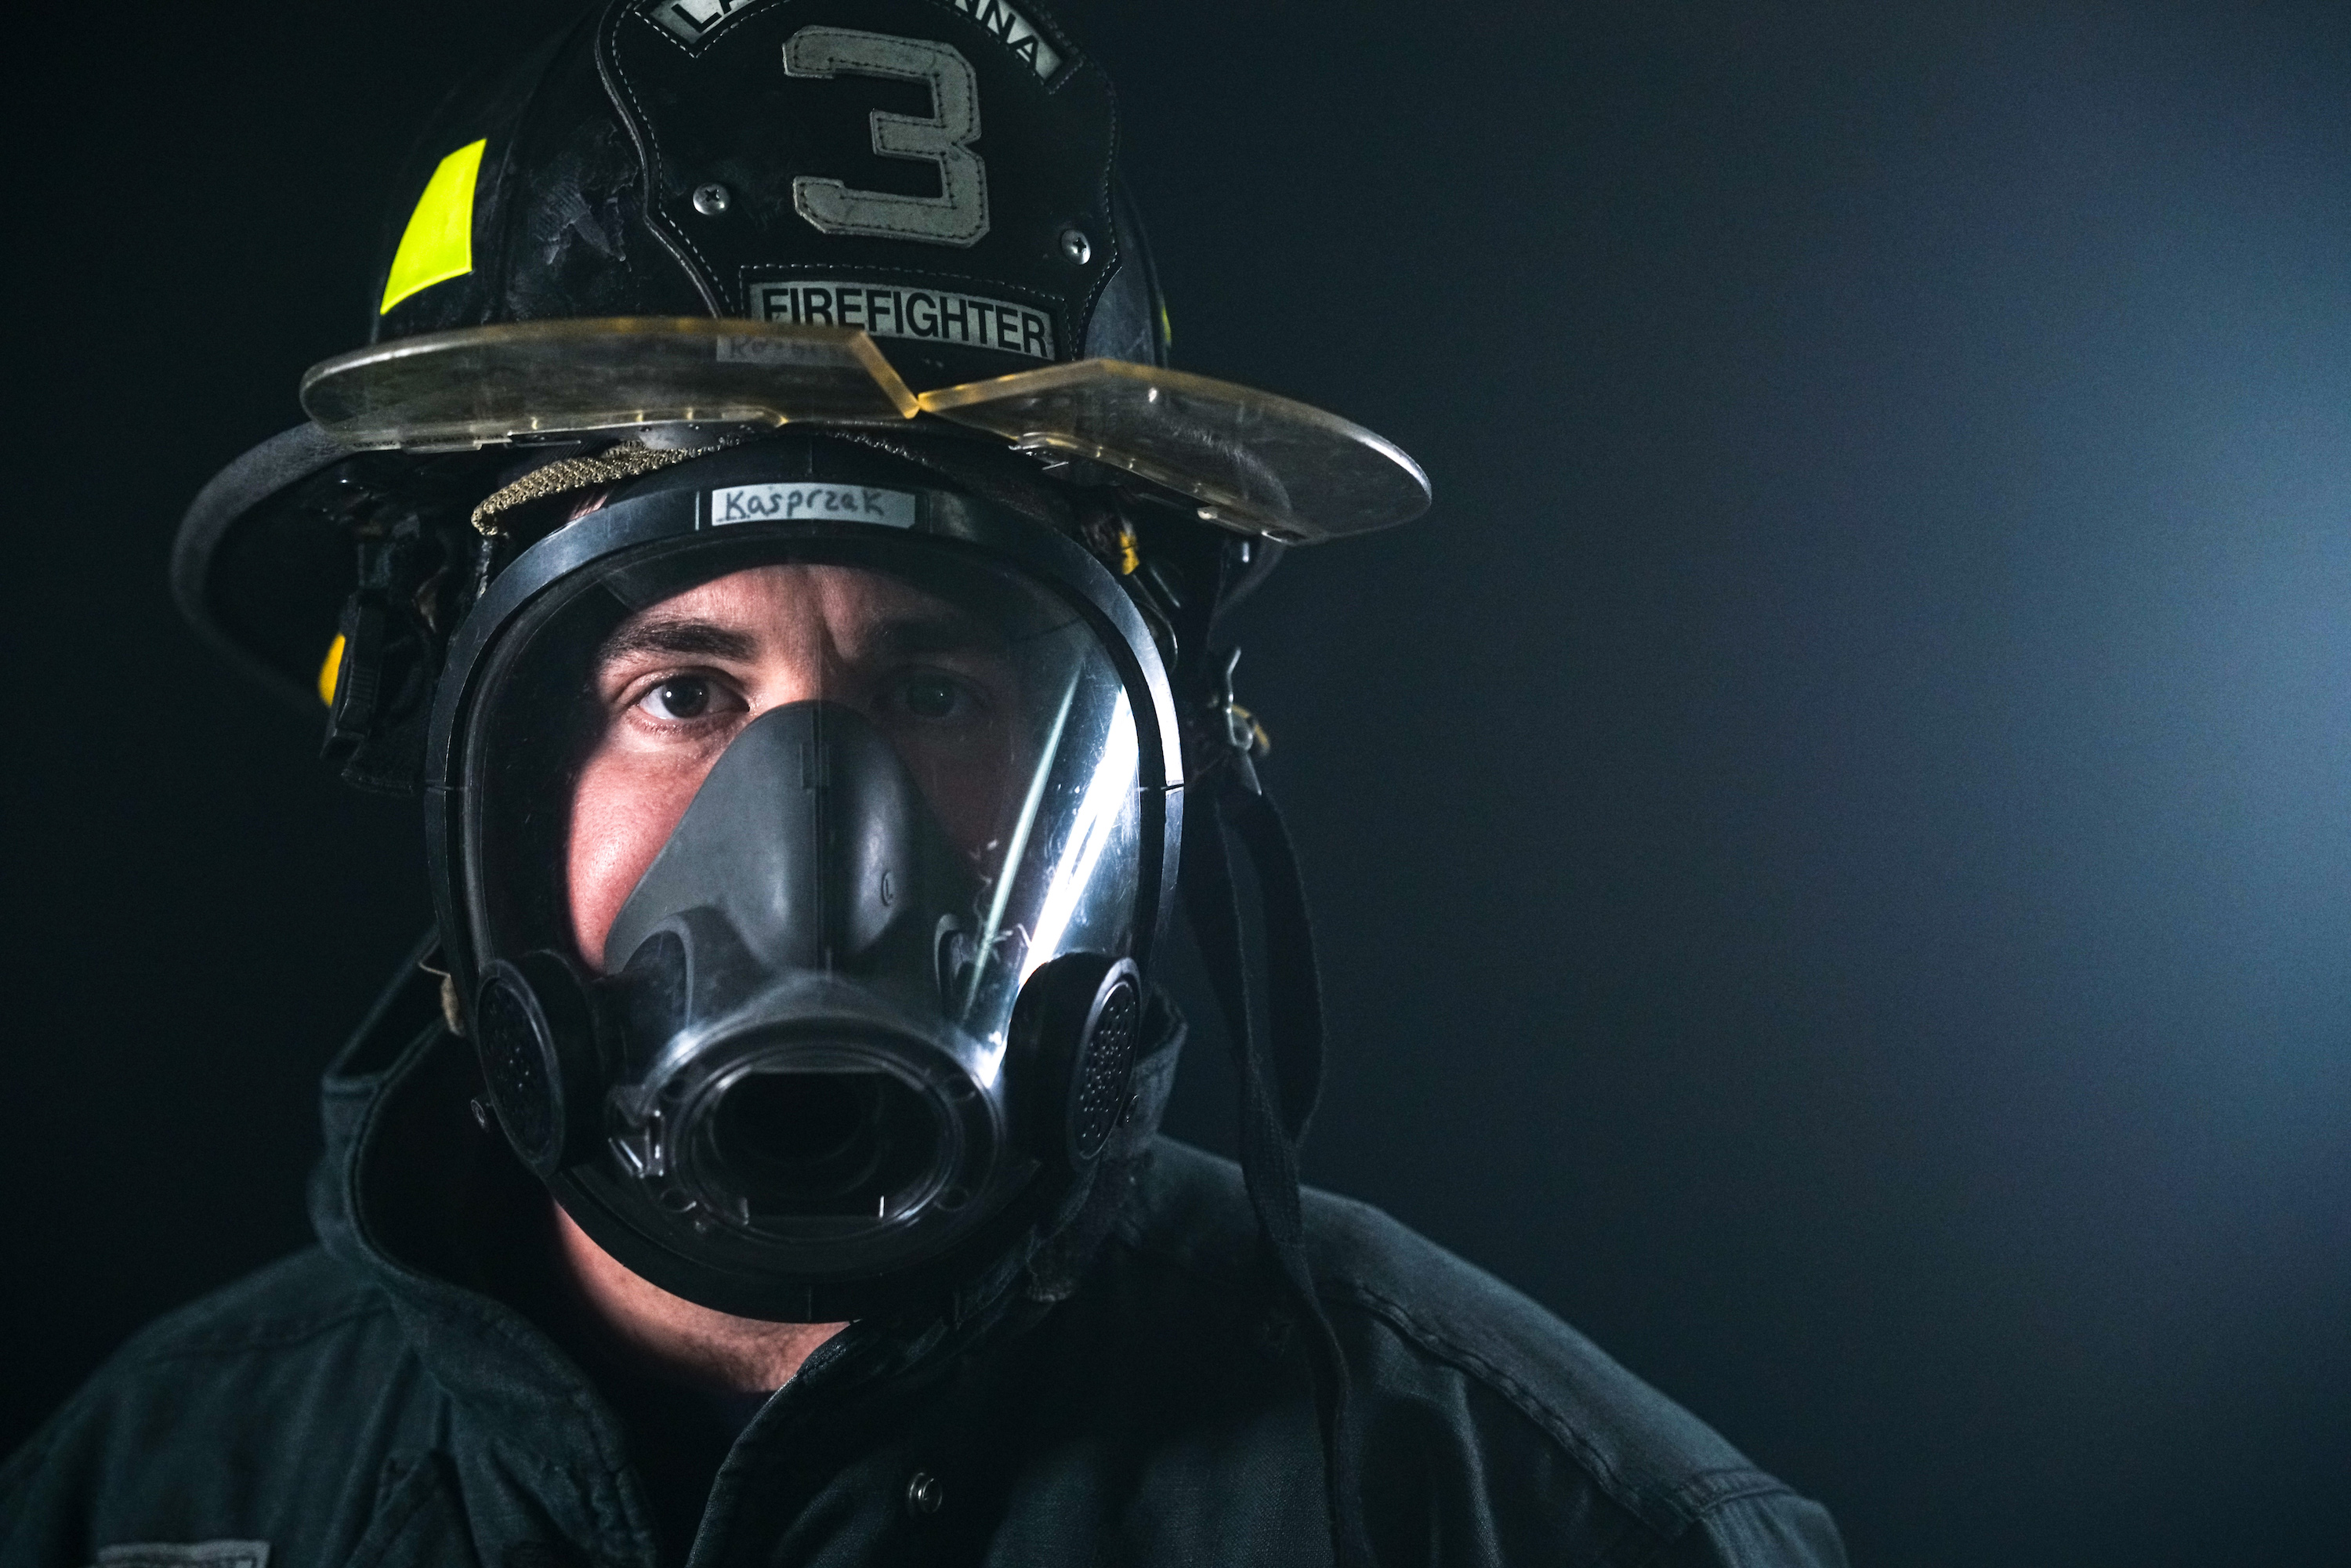 How Firefighters Can Reduce Their Cancer Risk Roswell